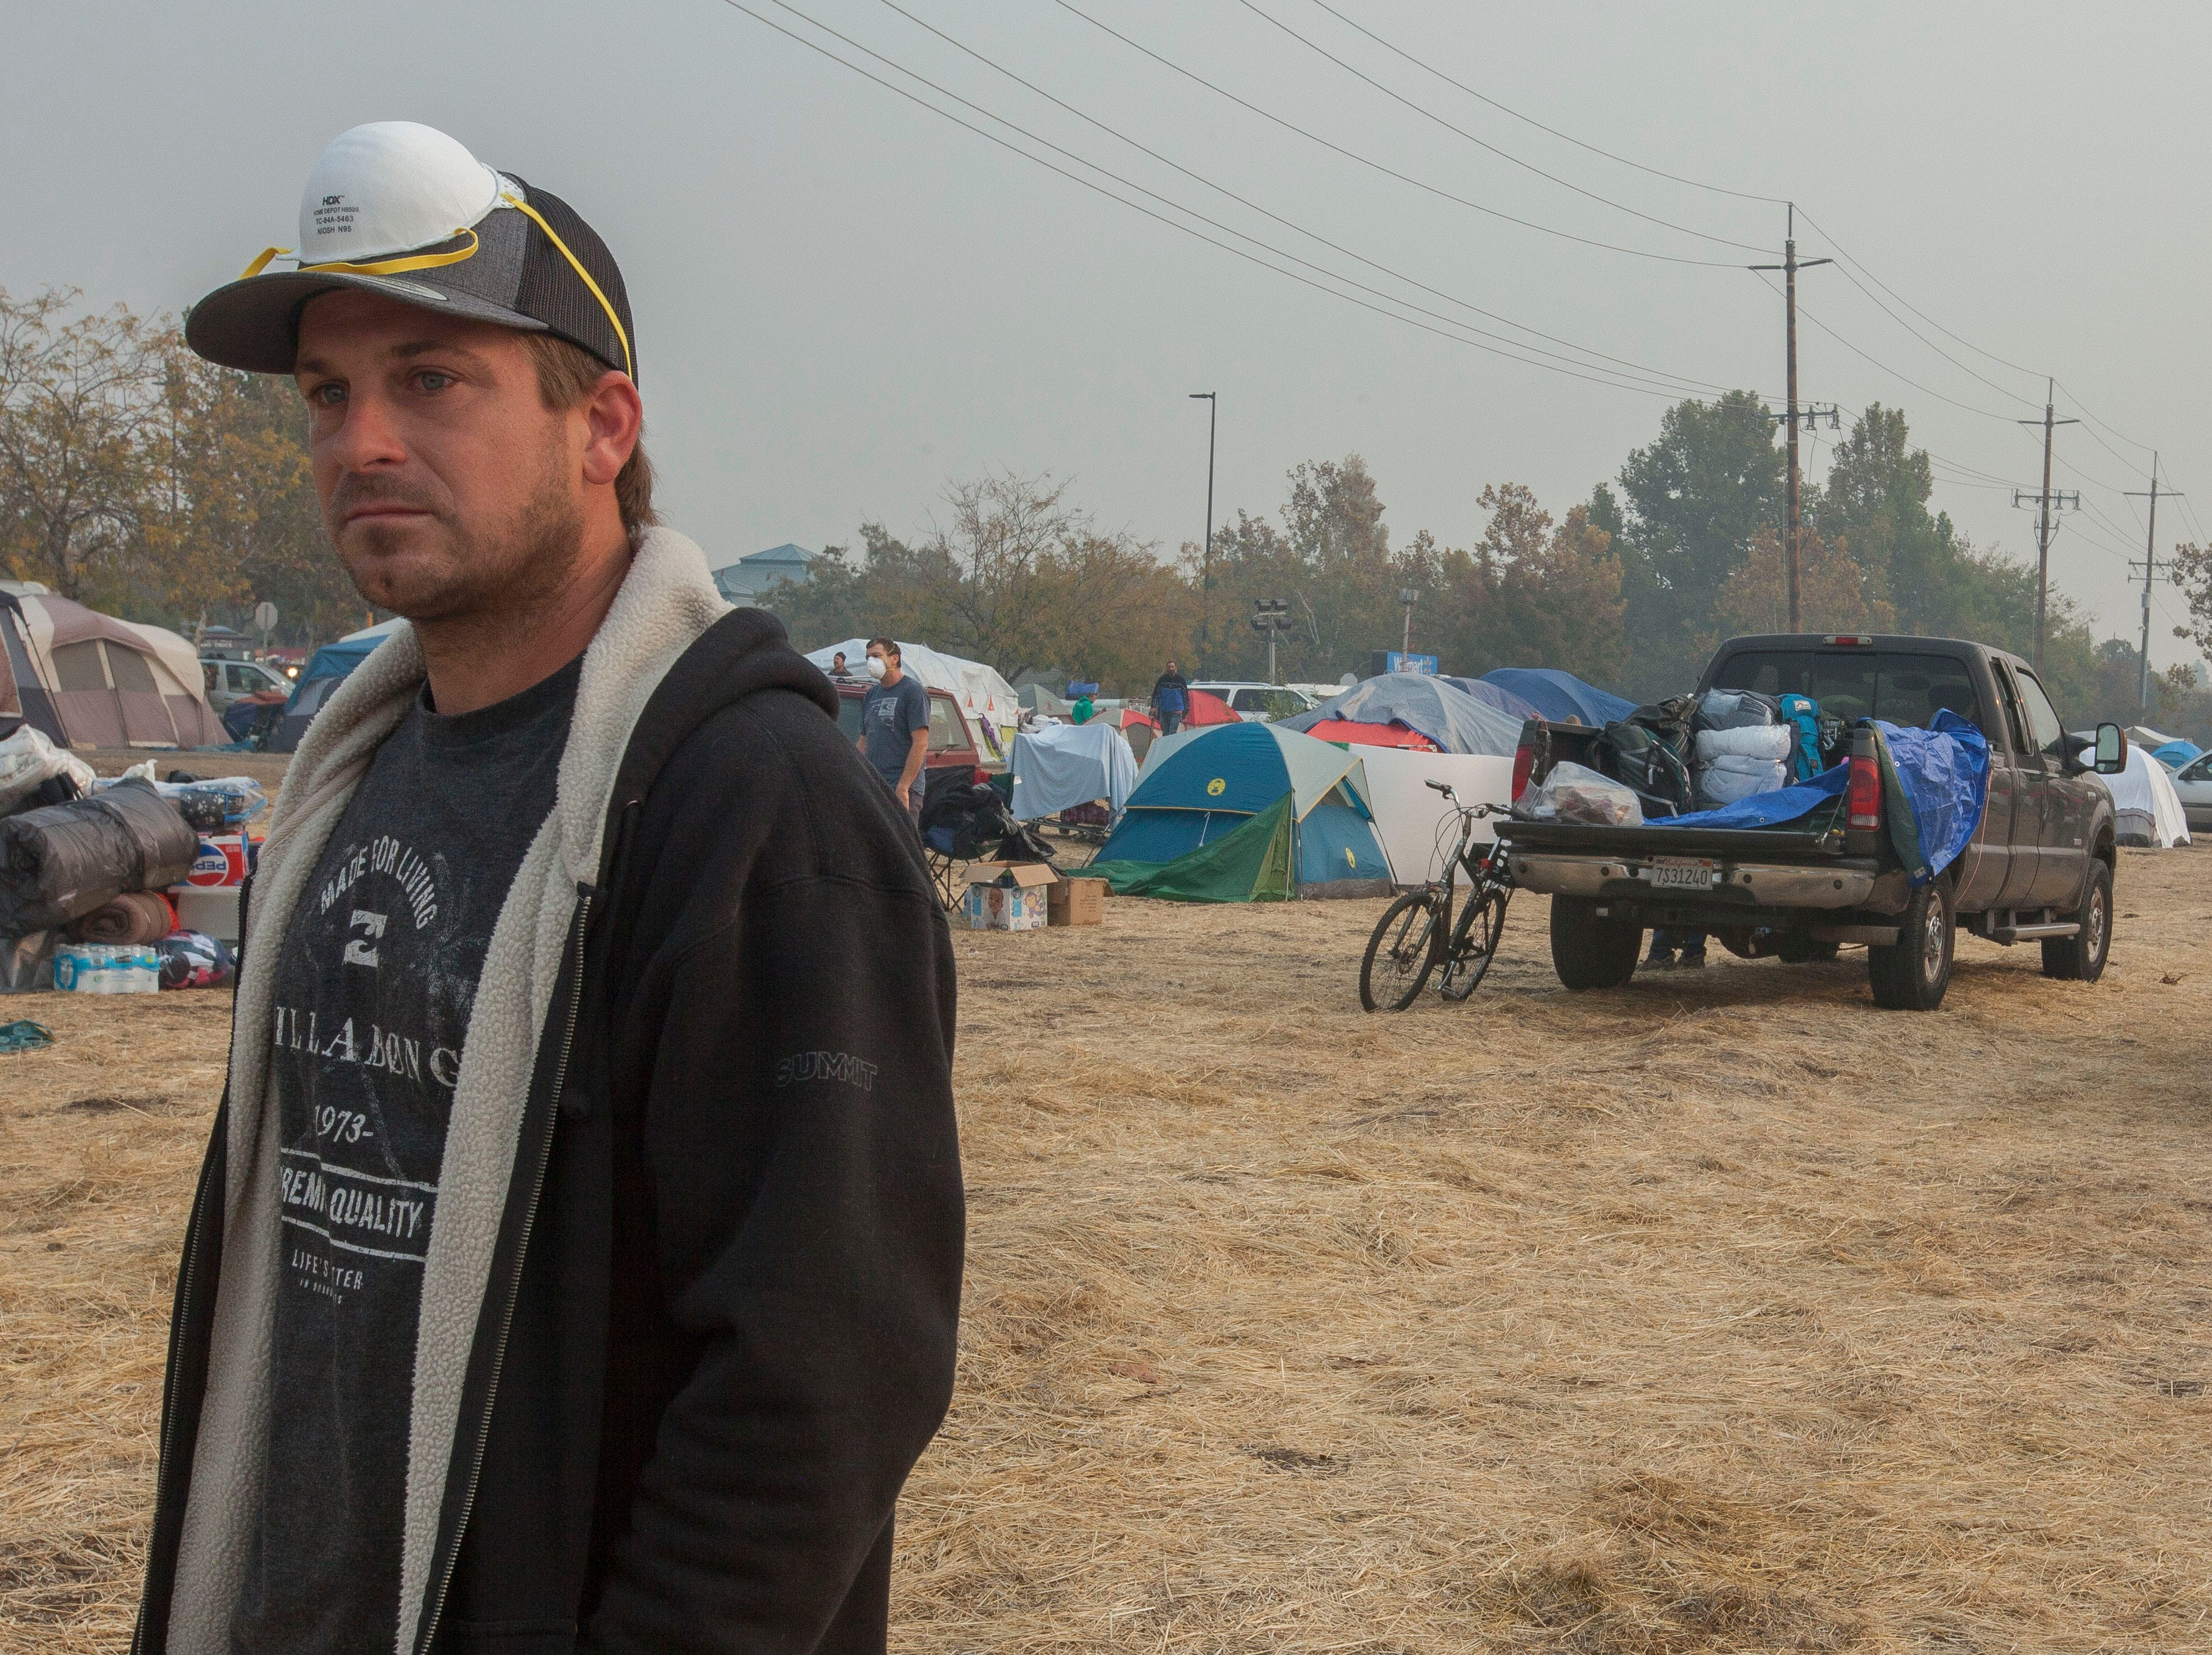 Christian Walters who lost his RV and vehicle in the Camp Fire is now staying in a tent at the Walmart parking lot in Chico, CA..